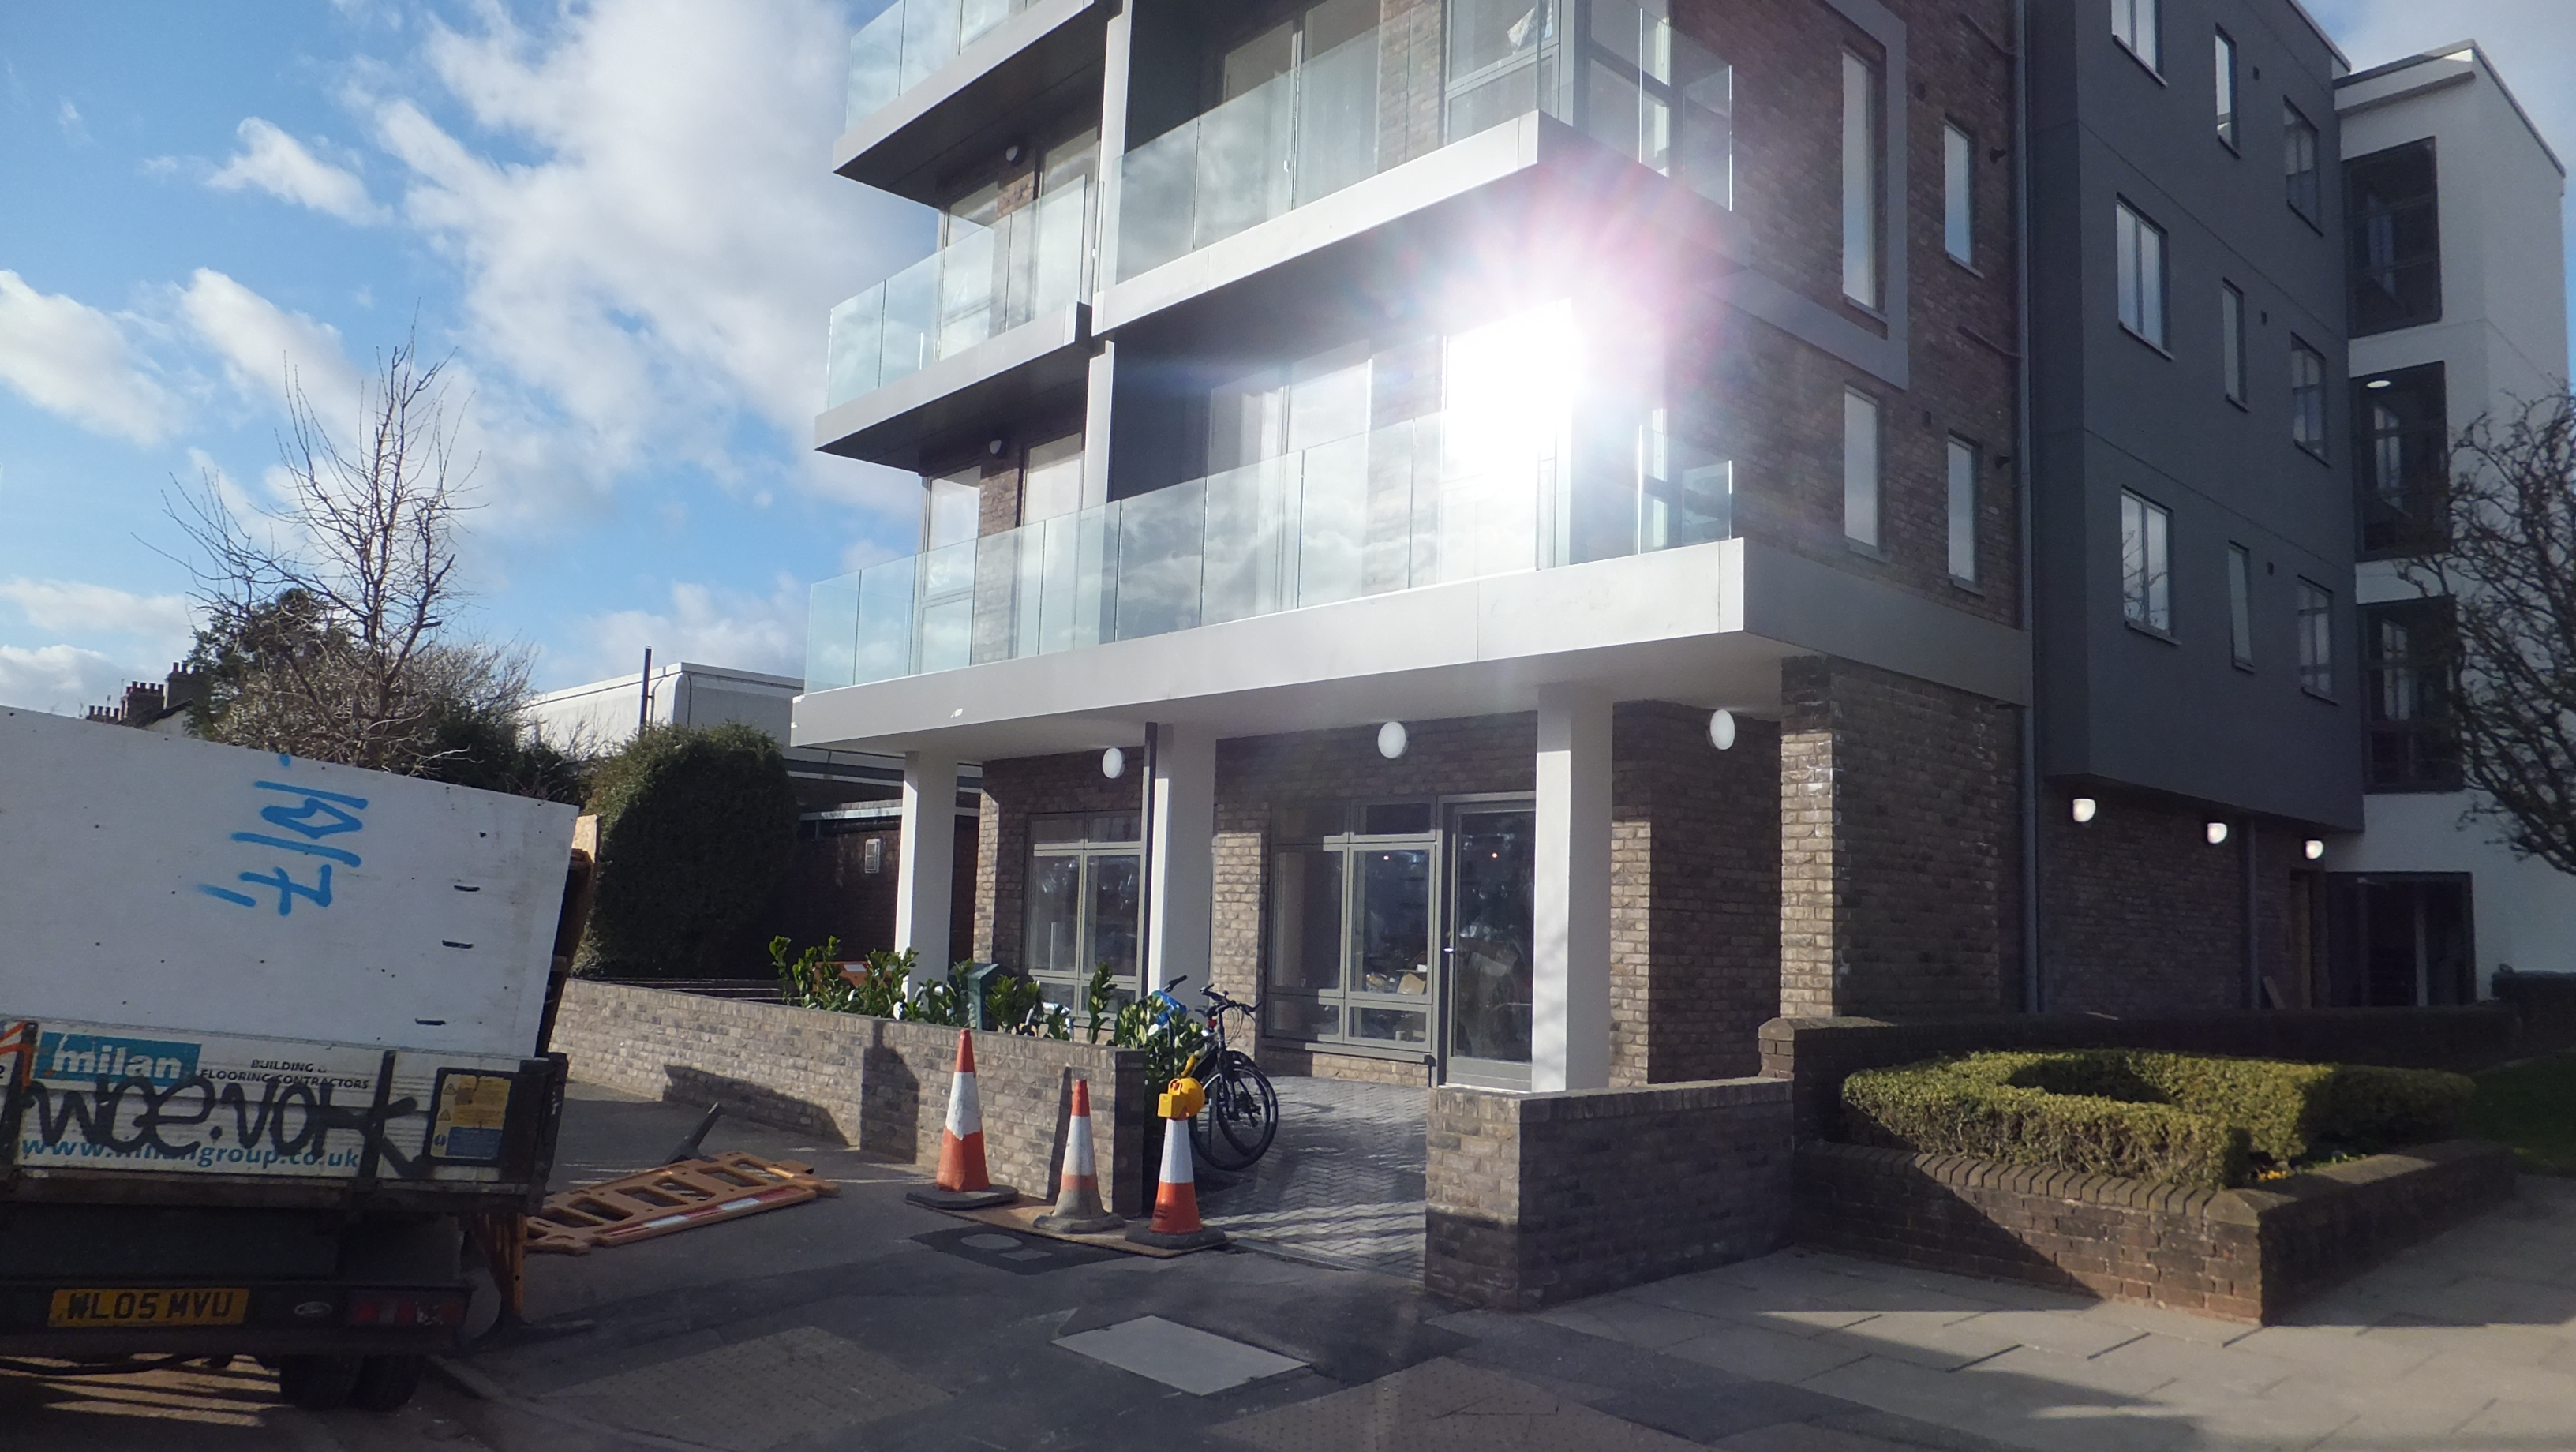 Sale Completed: Office space in Hove